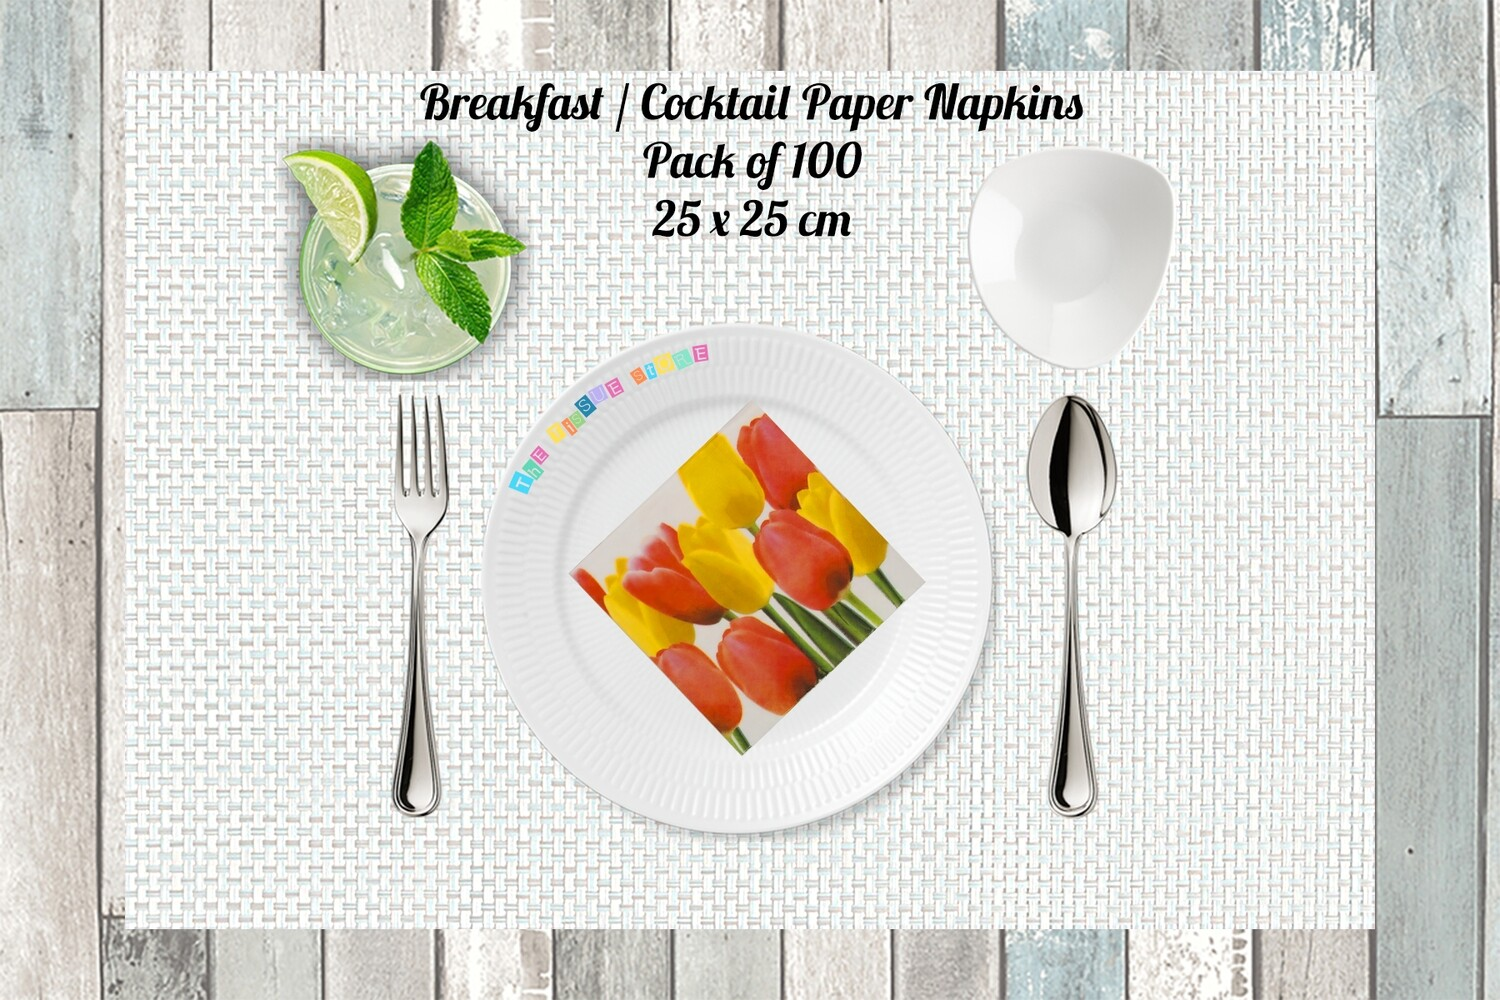 Breakfast / Cocktail Paper Napkin -Tulips Print 9x9- (Pack of 20)